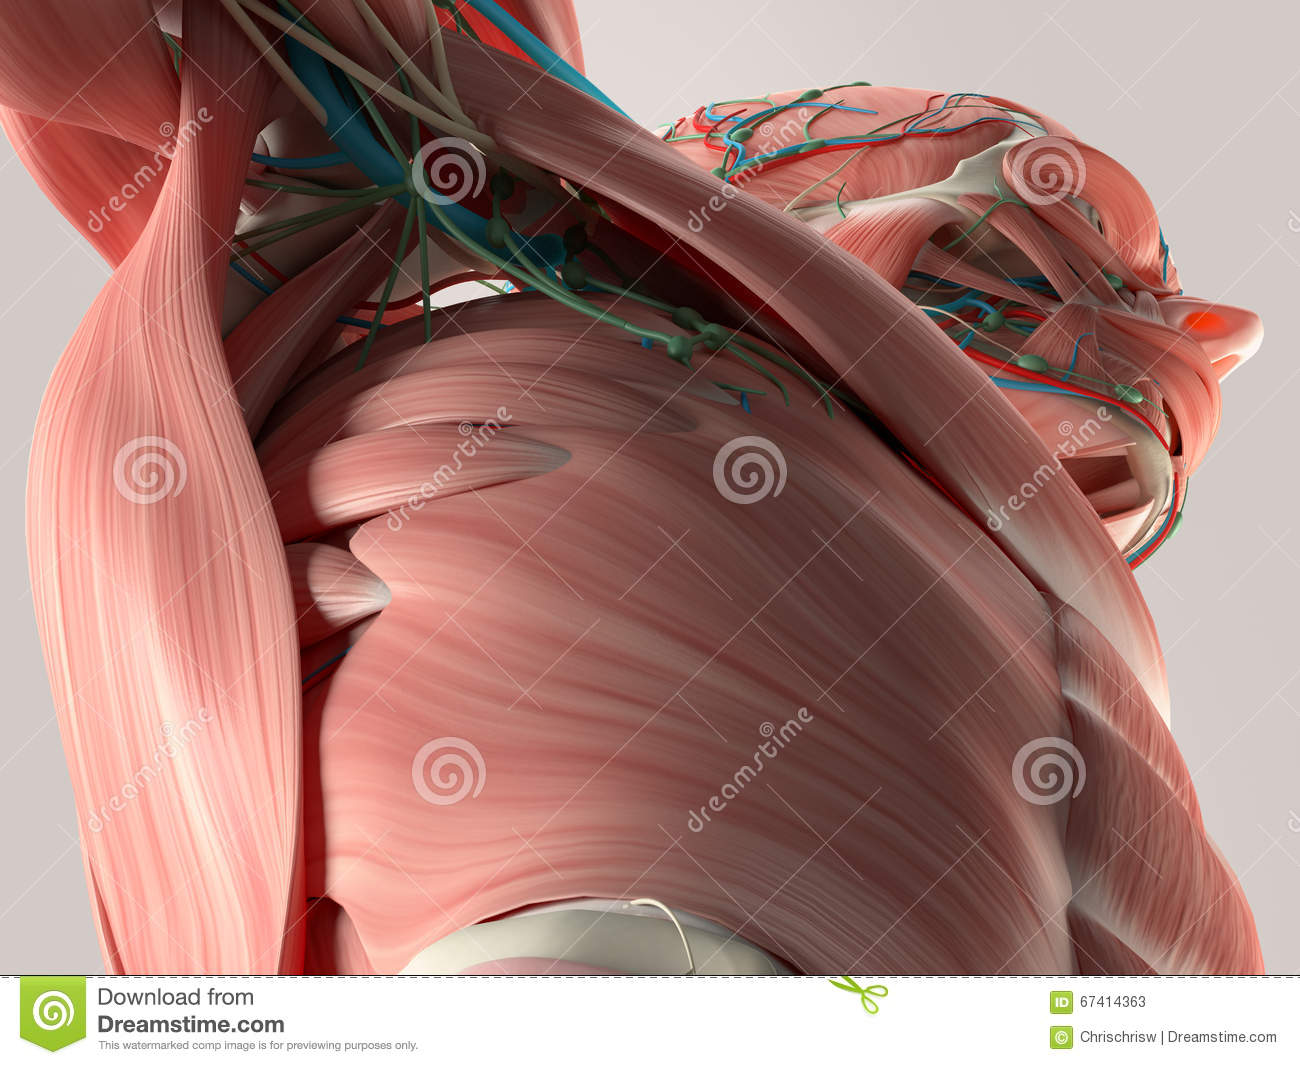 Human Anatomy Detail Of Chest And Shoulder Muscle Arteries On